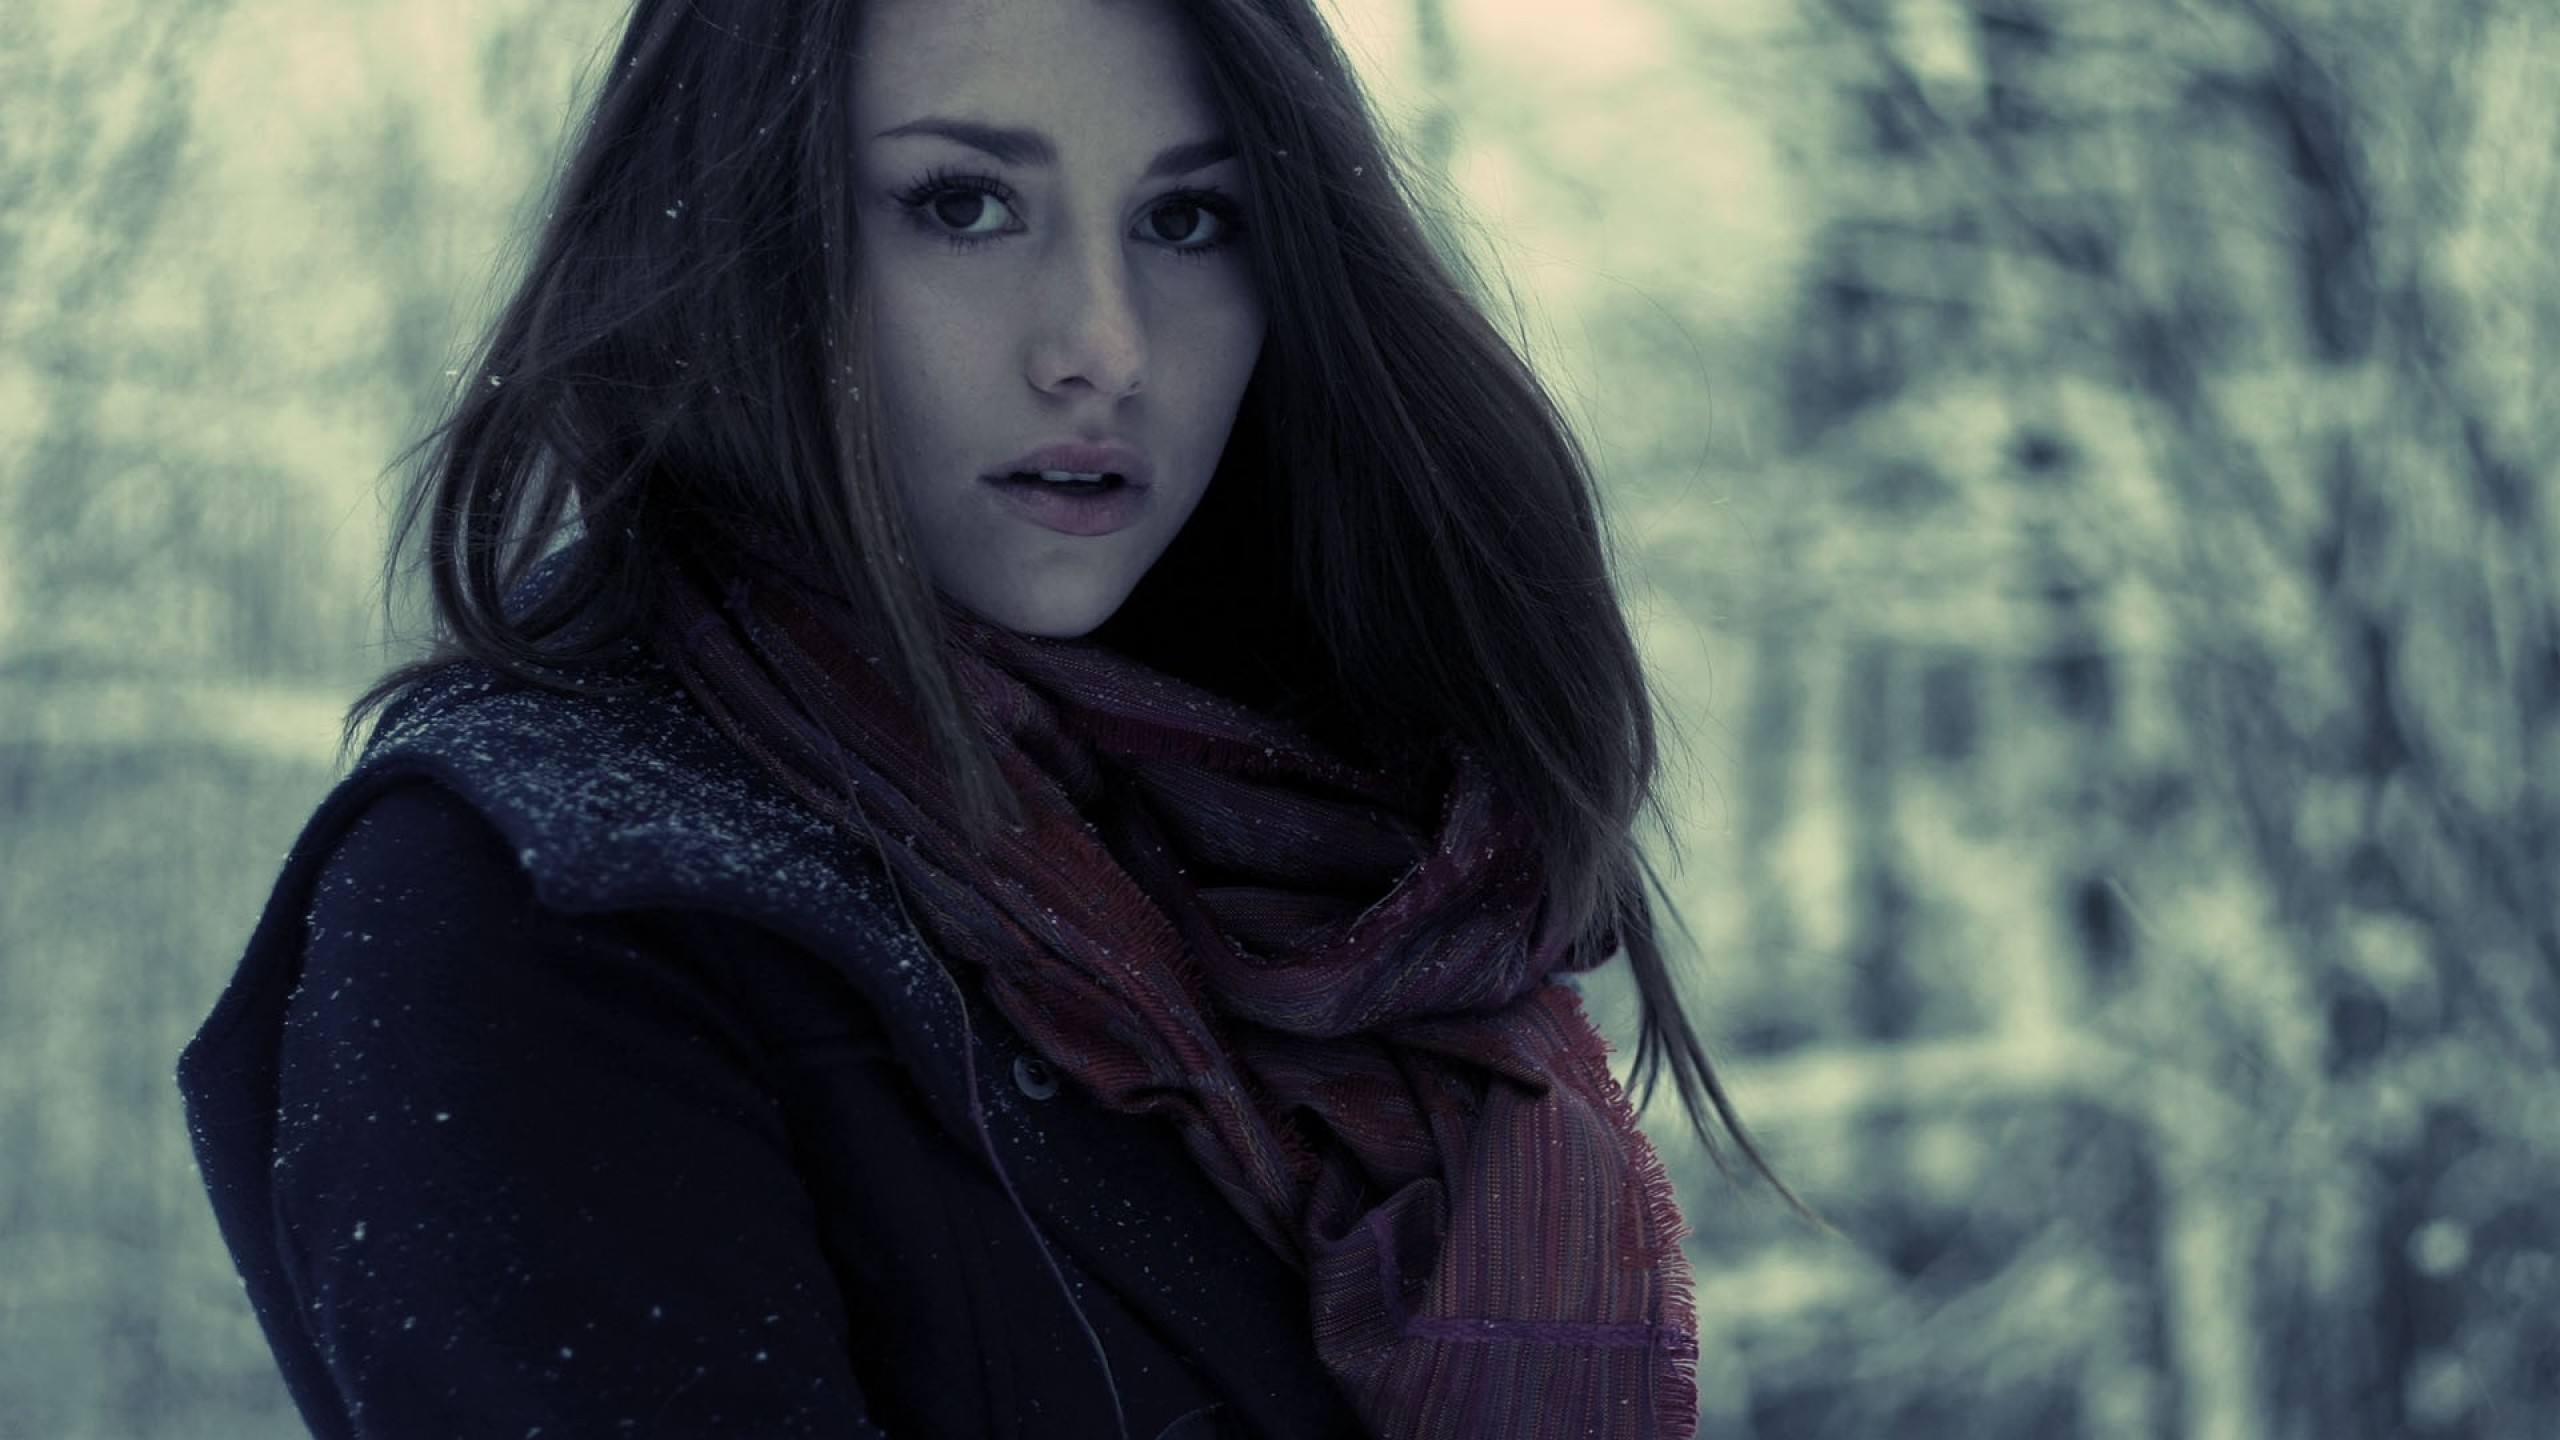 2560x1440 Cute, Beautiful, Girl, Face, Scarf, Hair, Eyes, Innocent